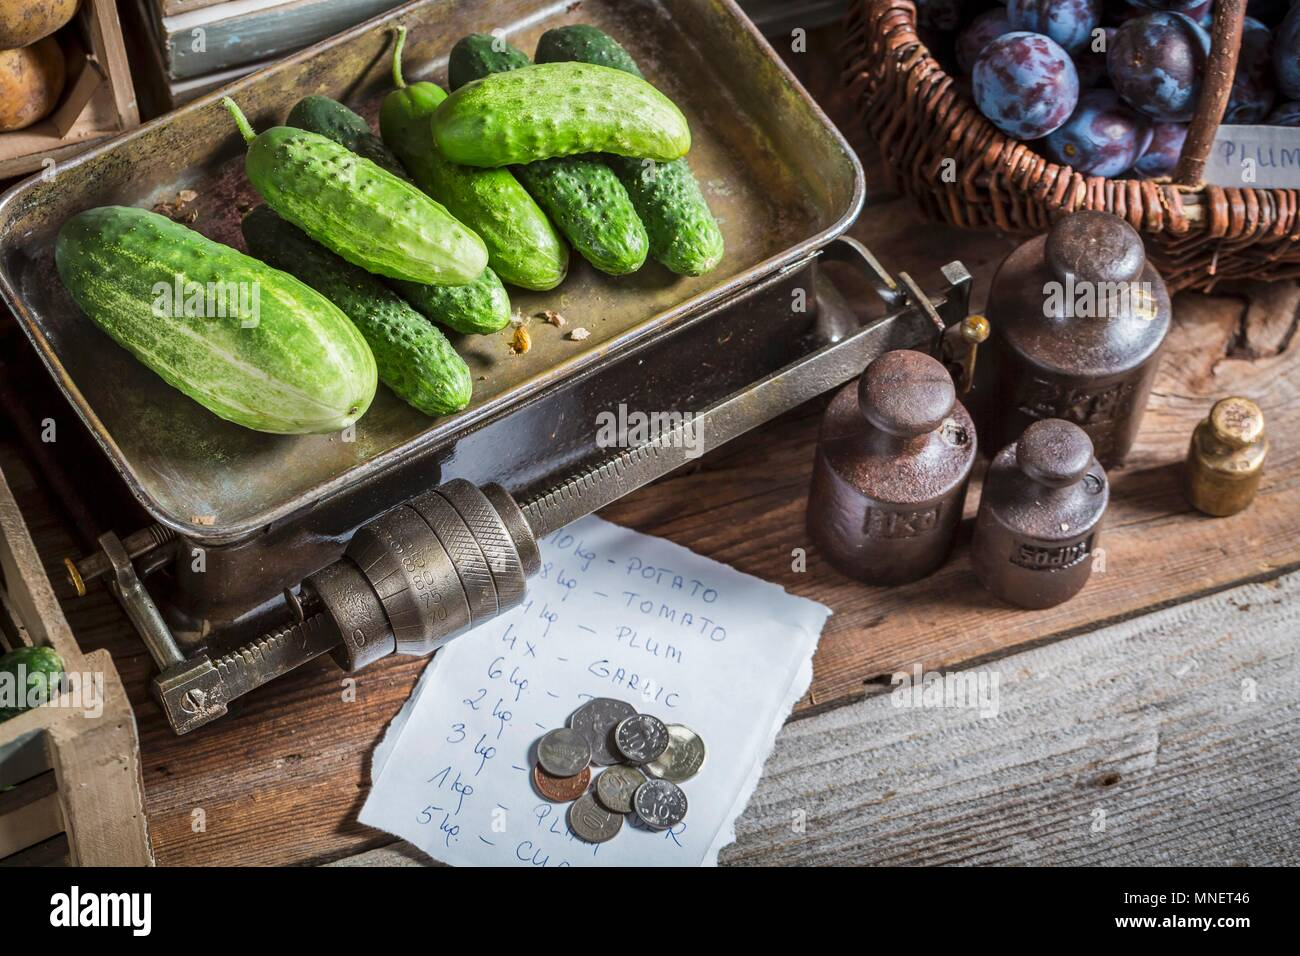 Cucumbers on an old pair of scales - Stock Image